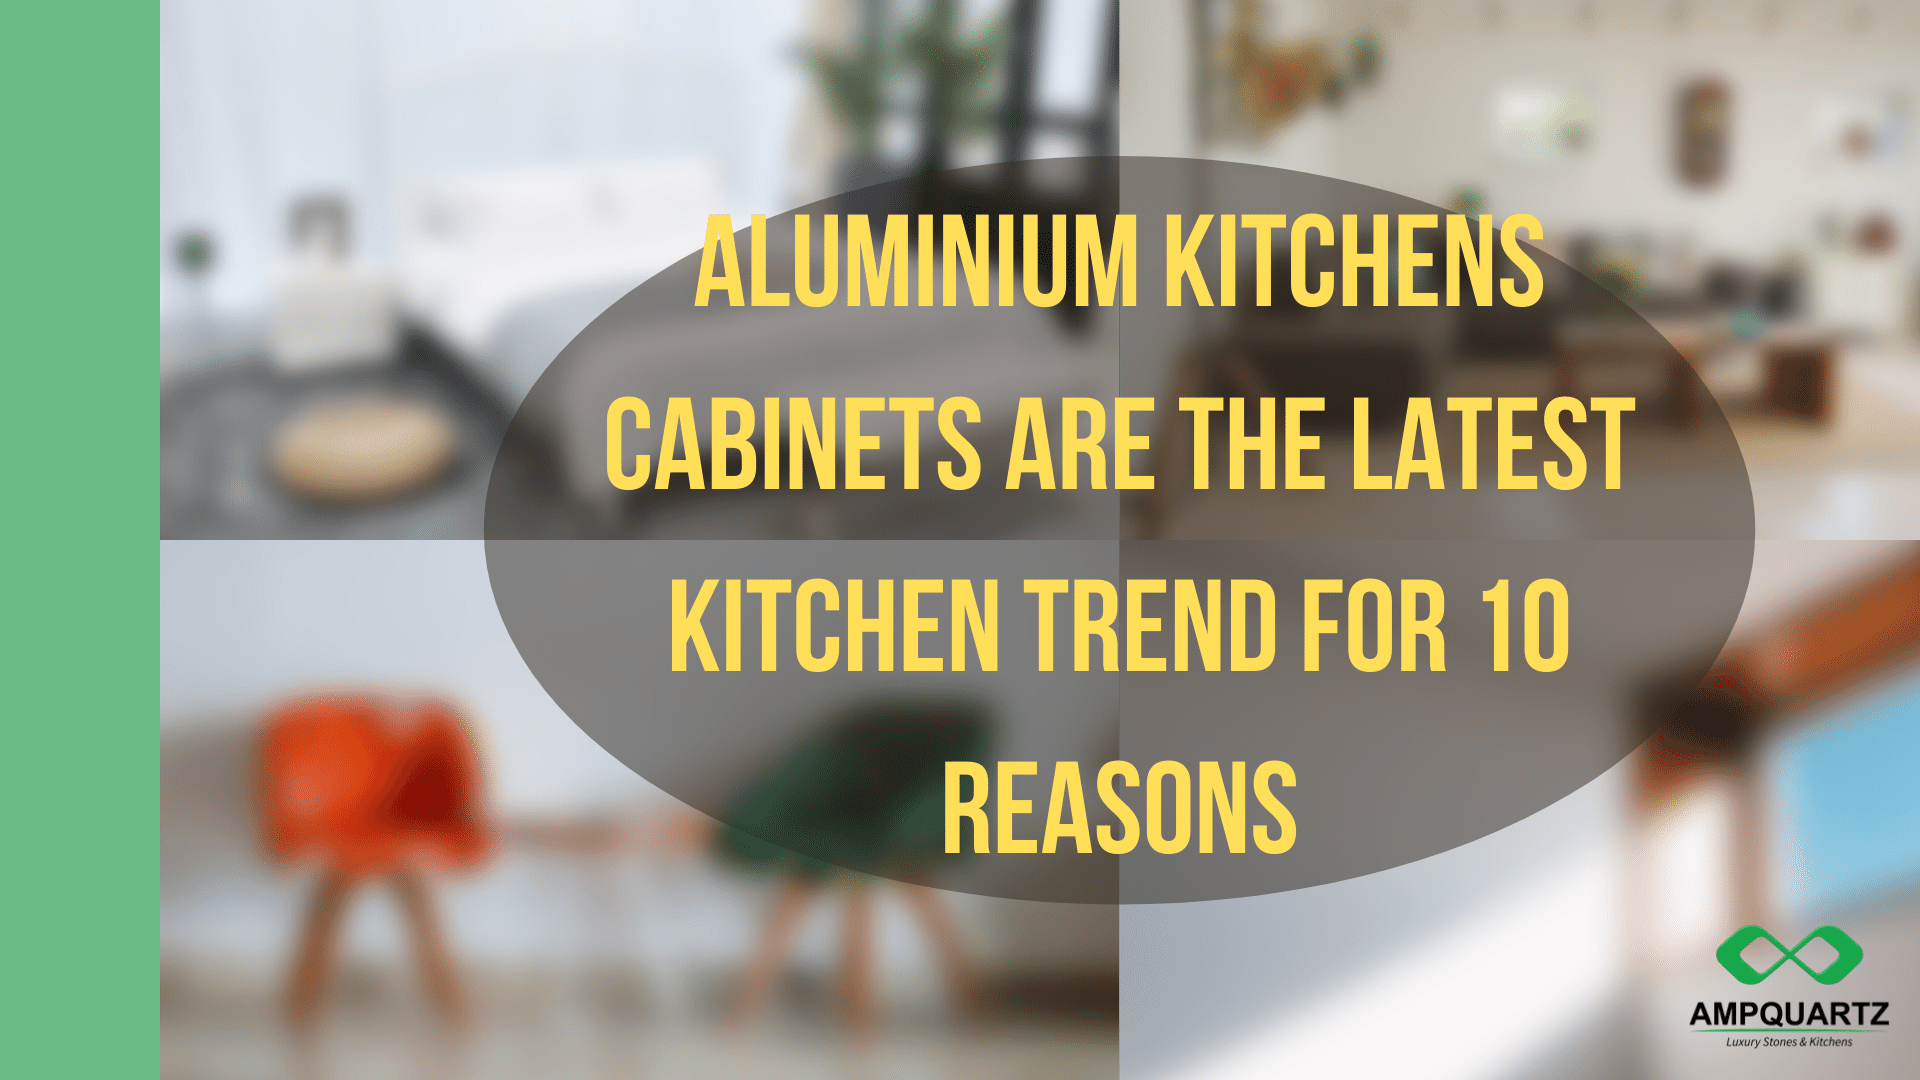 aluminium kitchen cabinet,aluminium kitchen cabinet johor,aluminium kitchen cabinet malaysia, Aluminium Kitchens Cabinets Are the Latest Kitchen Trend For 10 Reasons